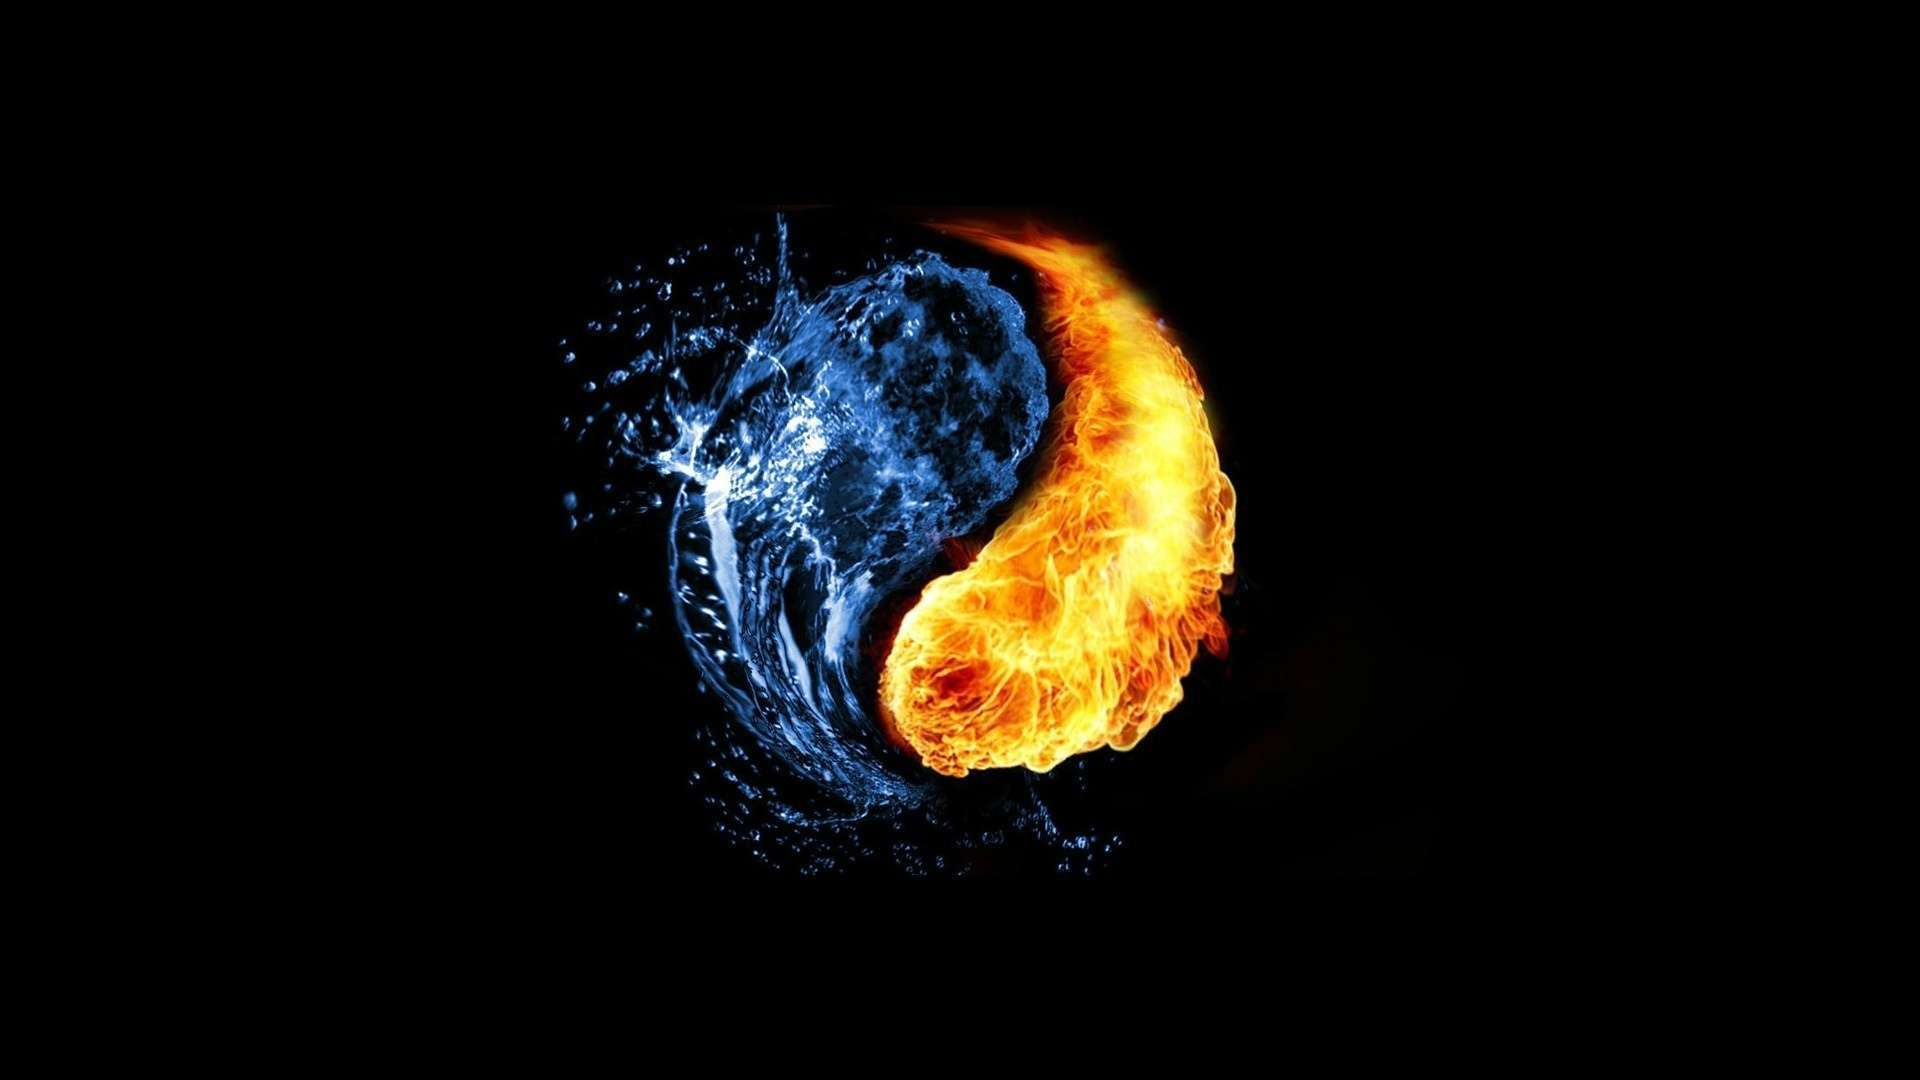 Fire And Ice Wallpapers Abstract Hq Fire And Ice Pictures 4k